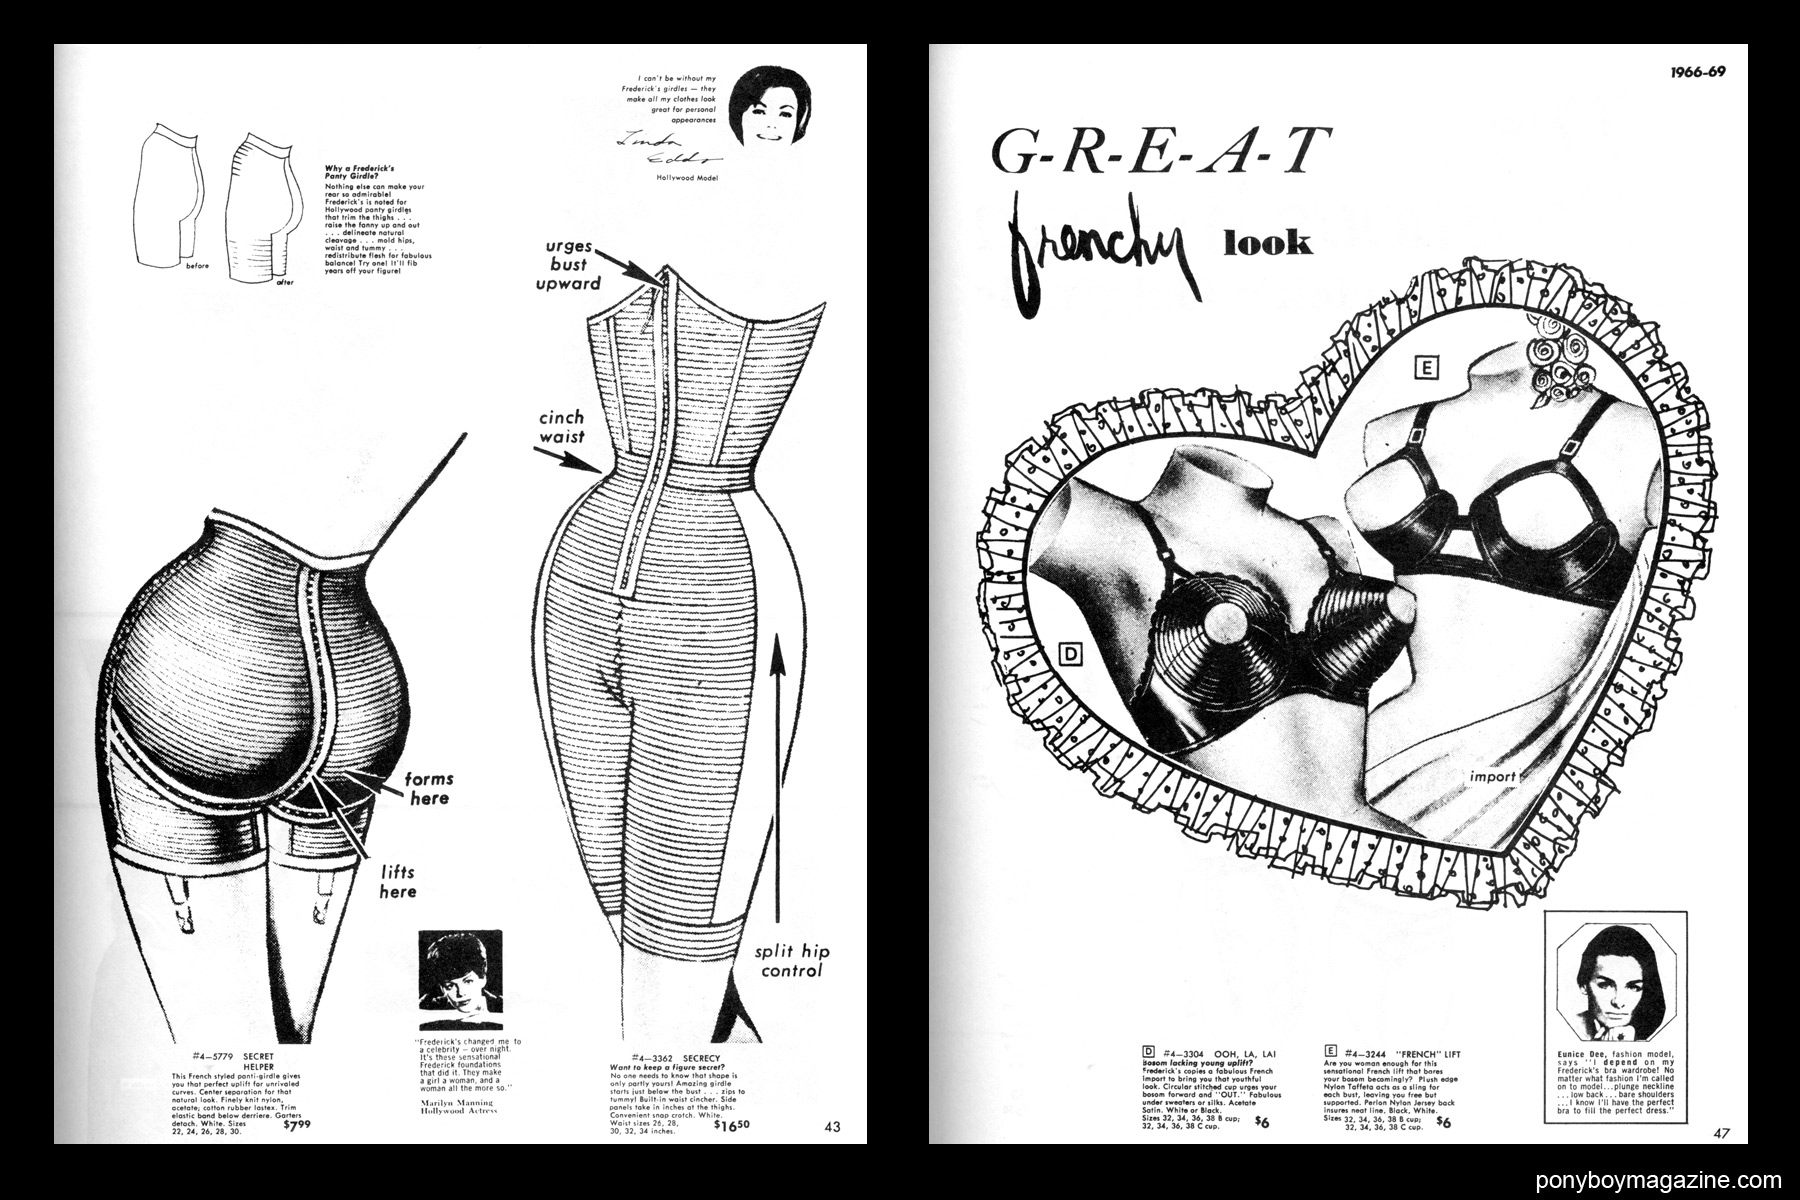 Sexy vintage bra illustrations, FREDERICK'S OF HOLLYWOOD: 26 Years of Mail Order Seduction. Printed in 1973 by Drake Publishers. Edited by Laura & Janusz Gottwald, Ponyboy Magazine New York City.